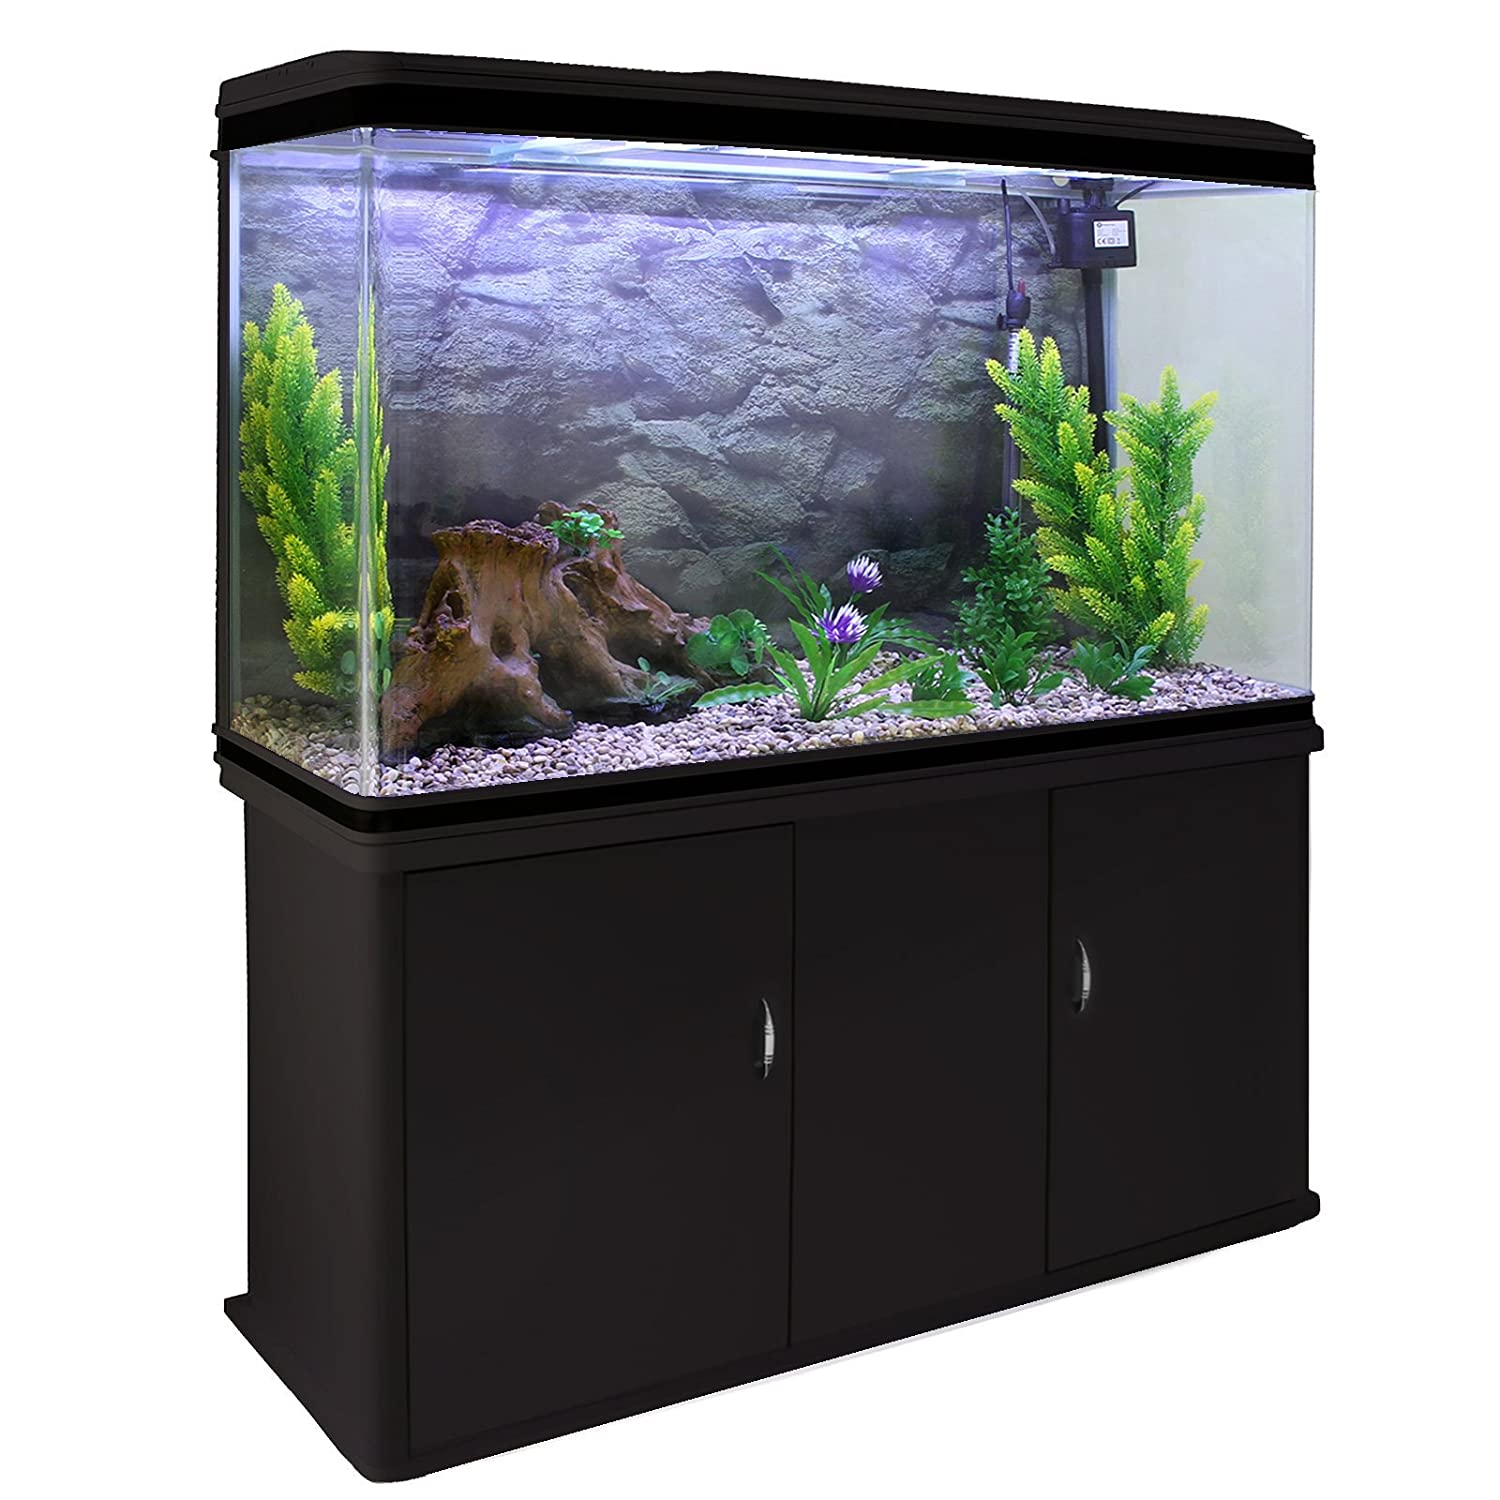 MonsterShop - Acuario 300 Litros con Mueble Negro y Kit con Plantas y Grava Natural 143cm x 120cm x 39cm: Amazon.es: Productos para mascotas